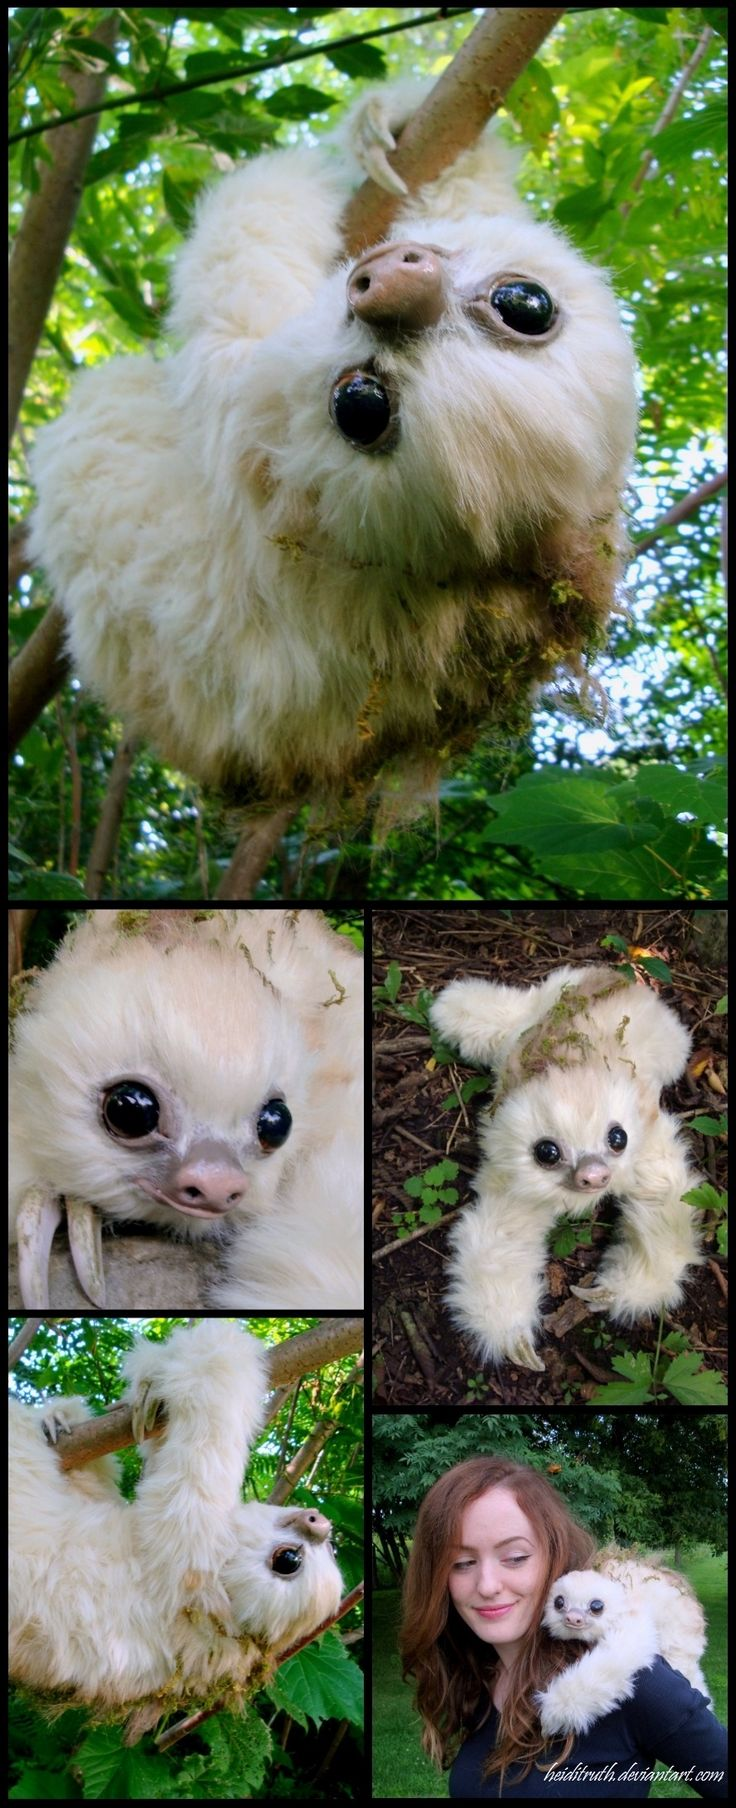 Baby Moss-Sloth, Handmade Fantasy Creature by Heiditruth.deviantart.com on @DeviantArt